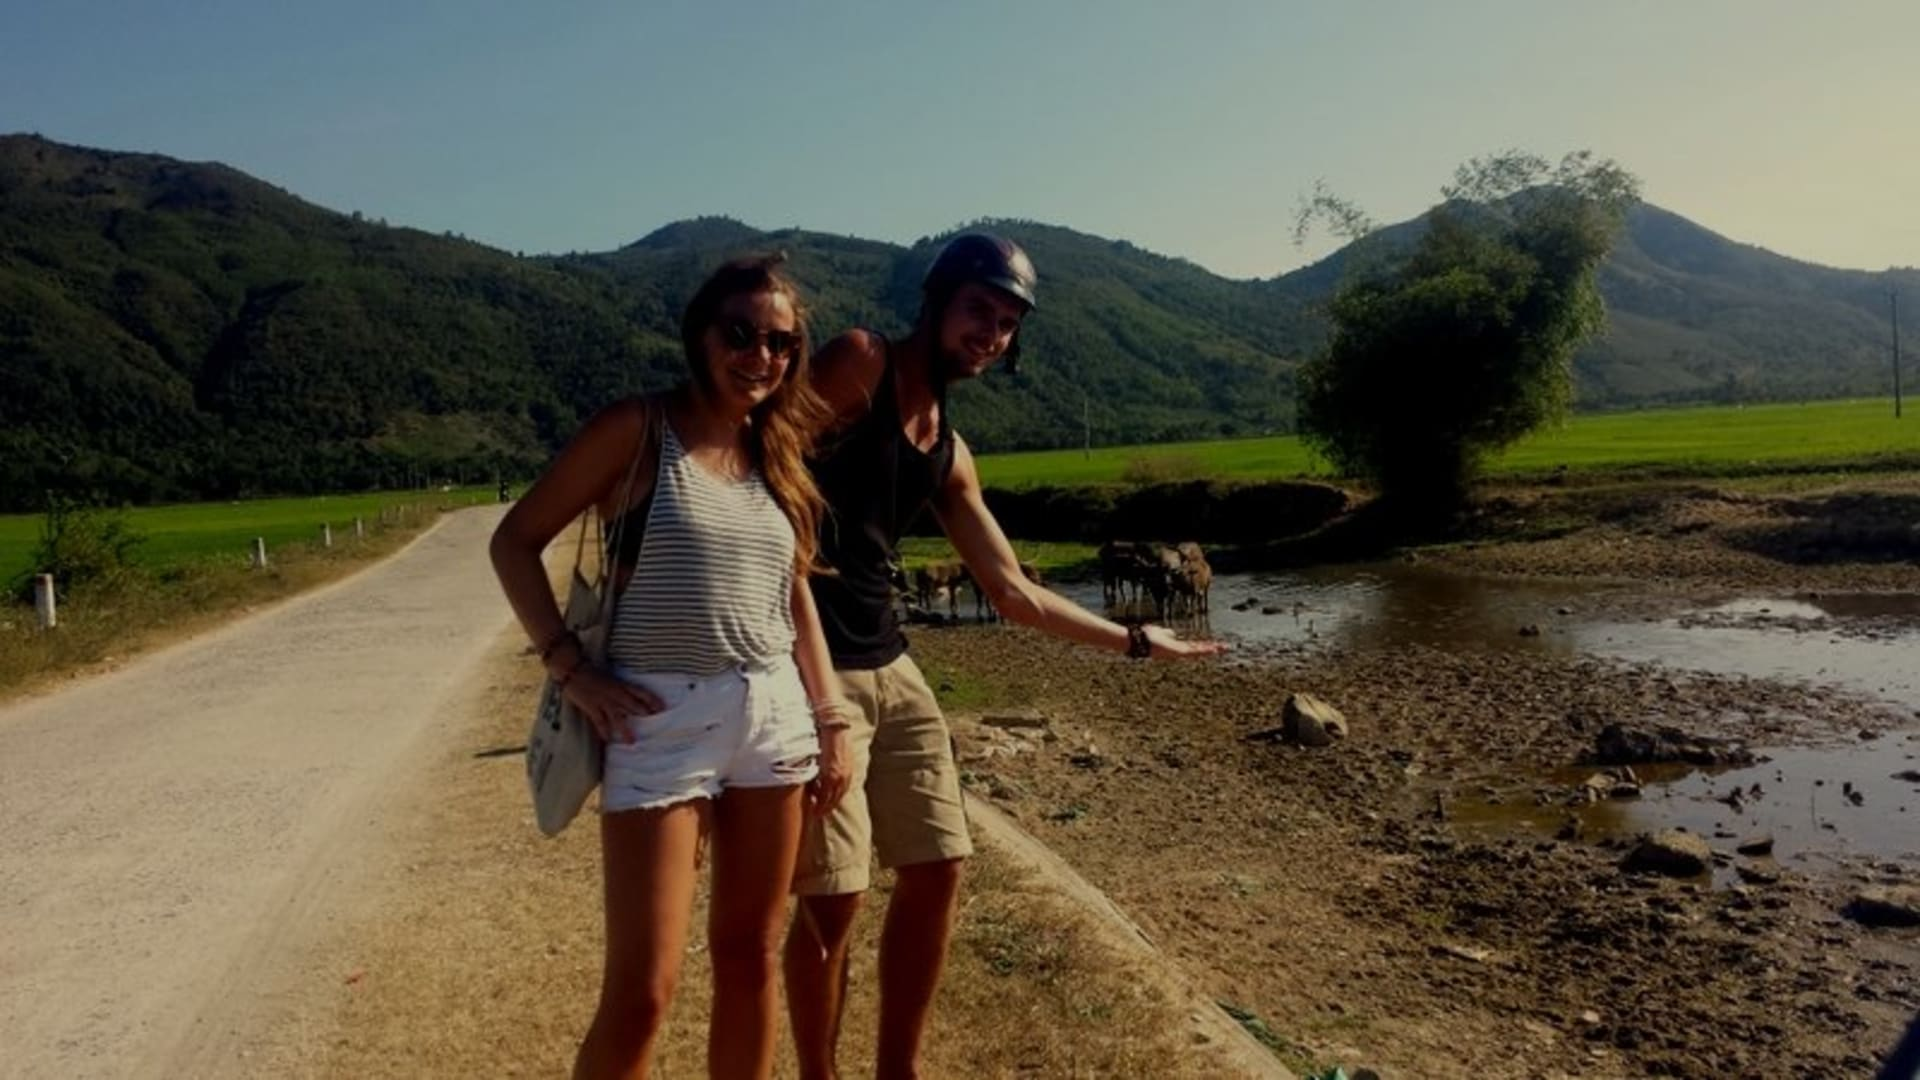 Top Things to do in Nha Trang - Withlocals